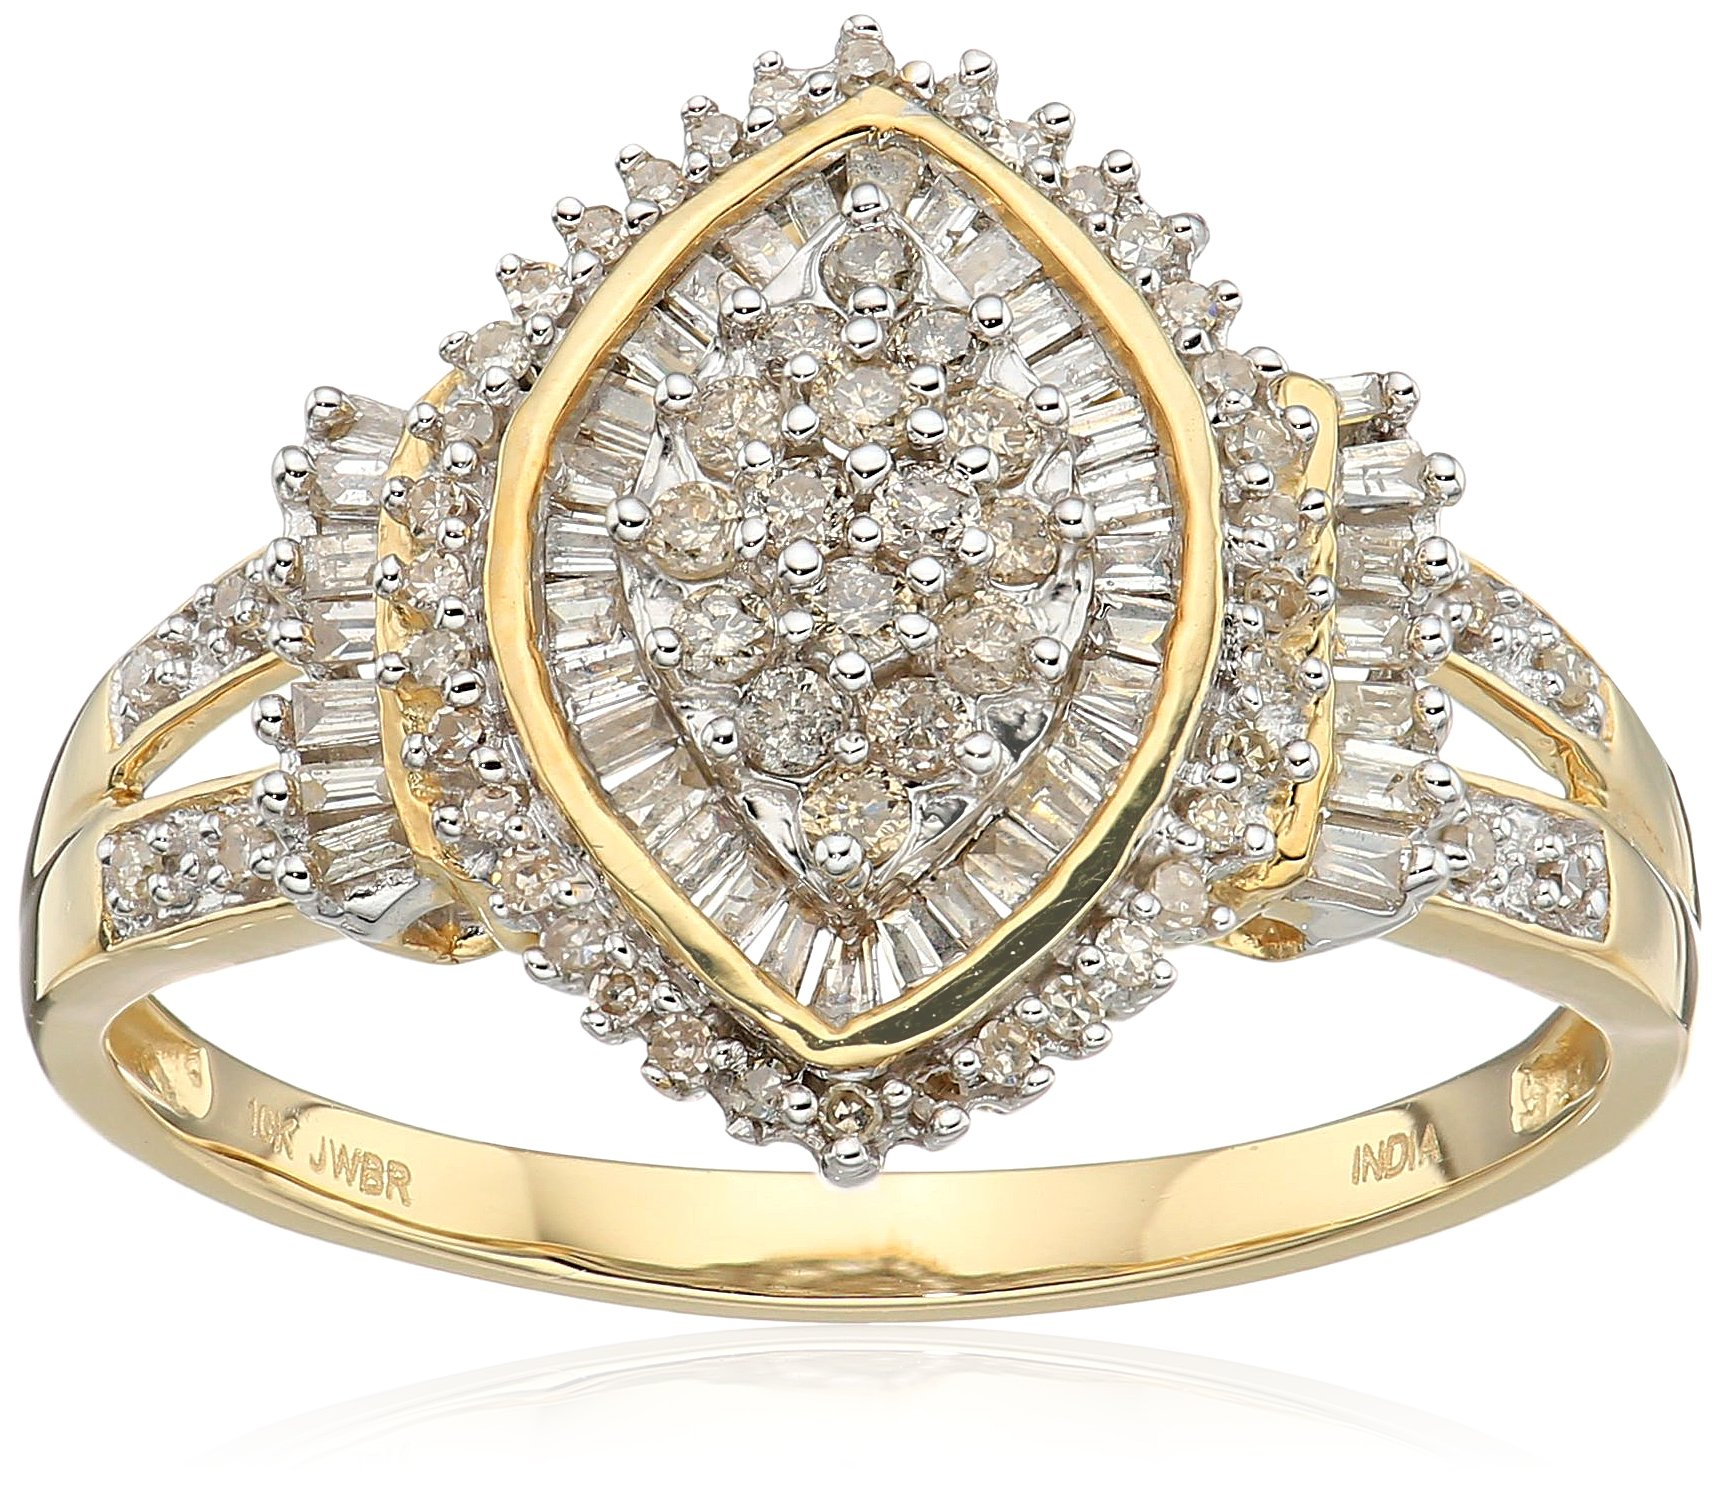 10k Yellow Gold Diamond Cocktail Cluster Ring (1/2 cttw), Size 9